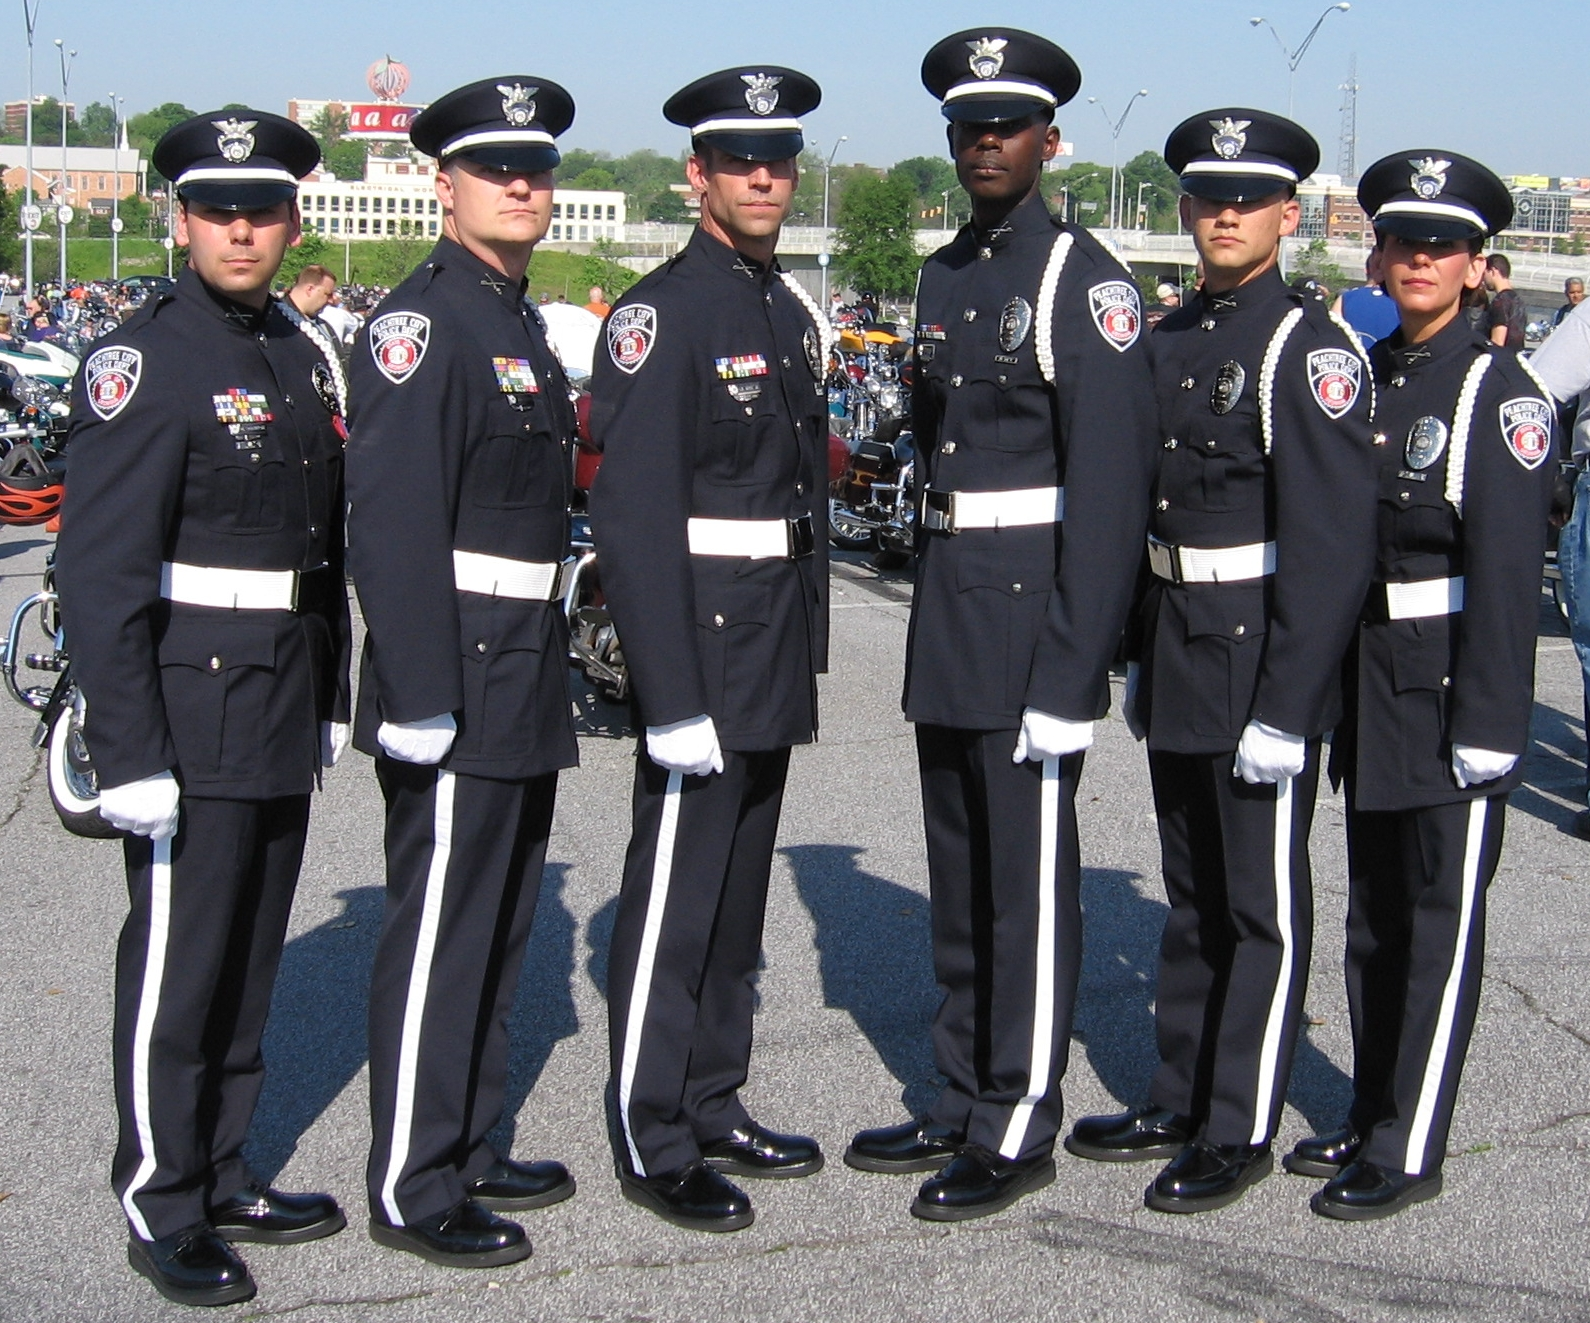 Honor Guard Group in Uniform